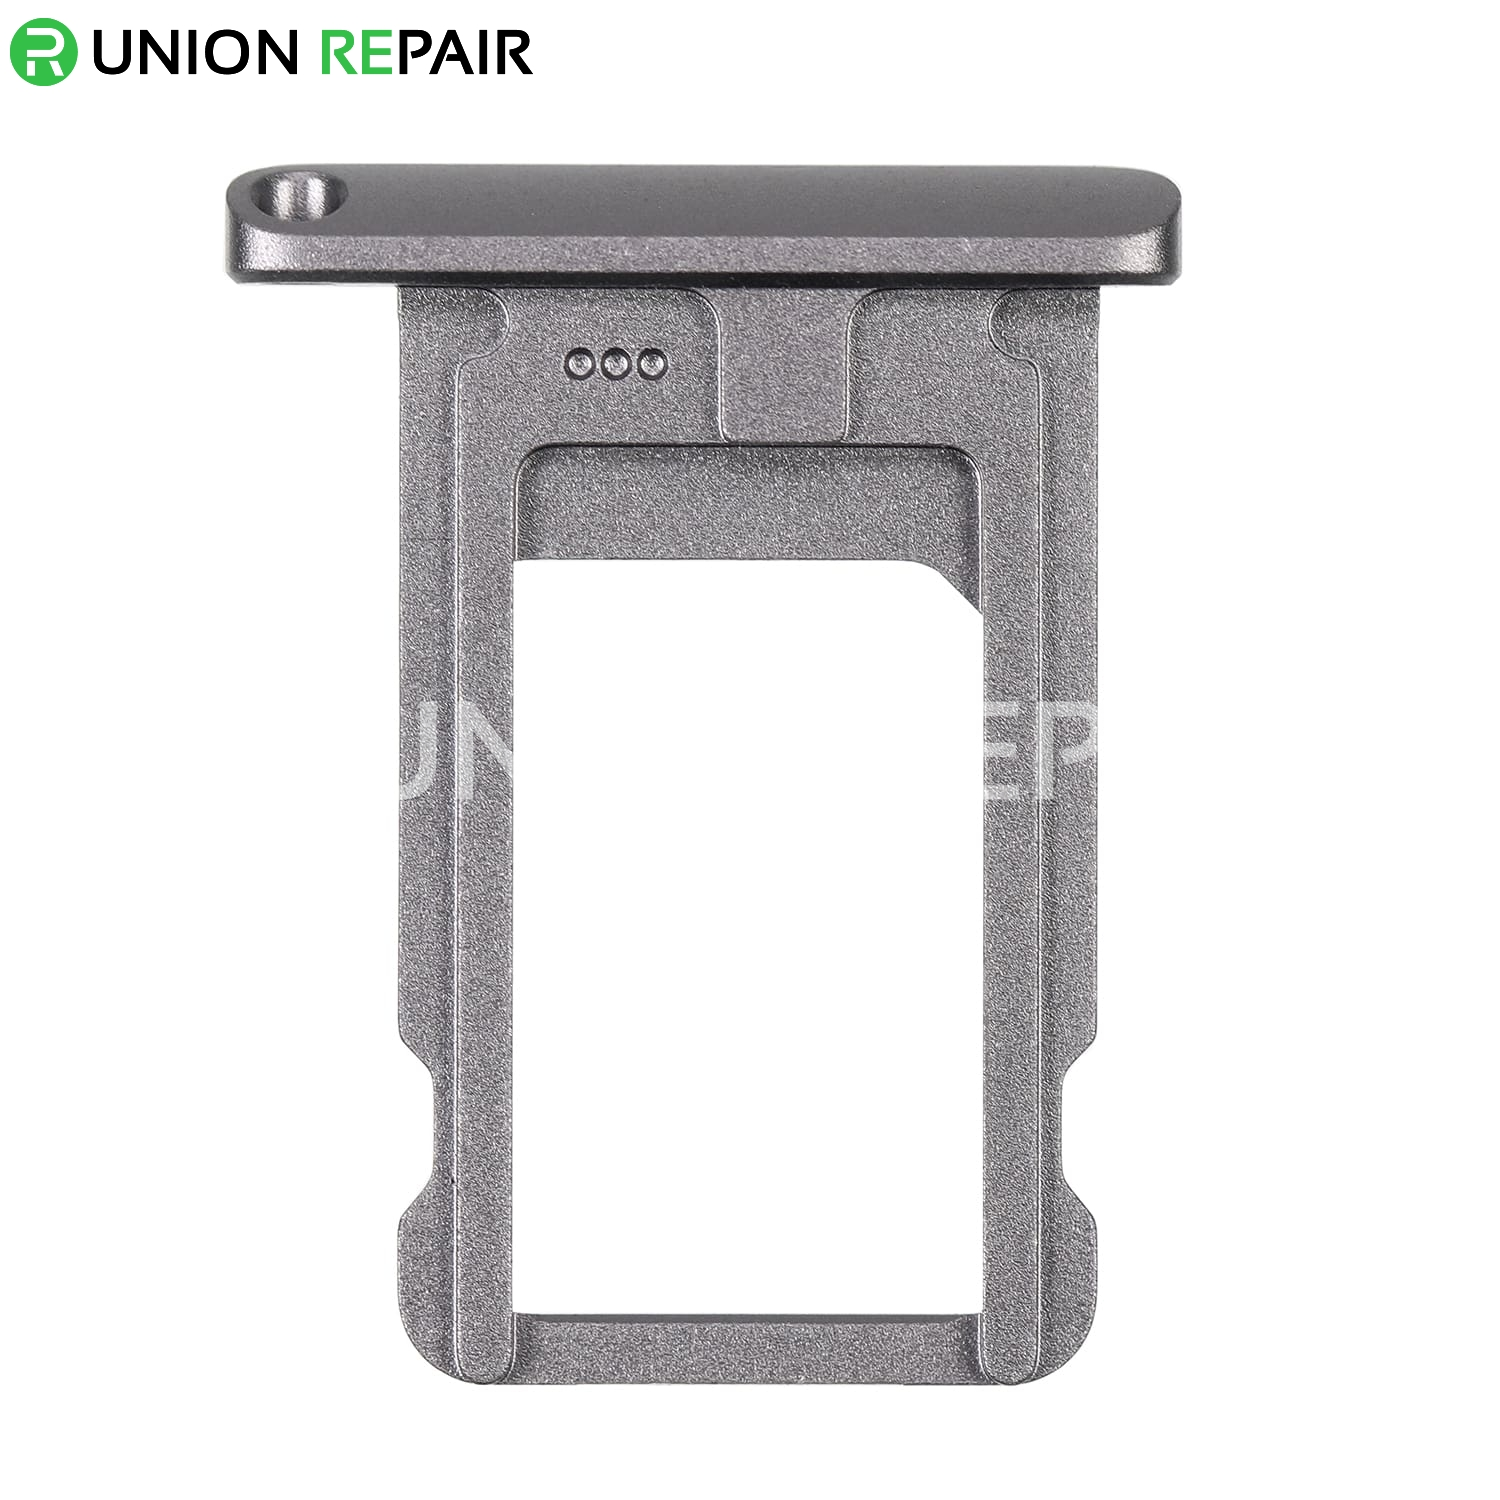 Replacement for iPad 6 SIM Card Tray - Grey